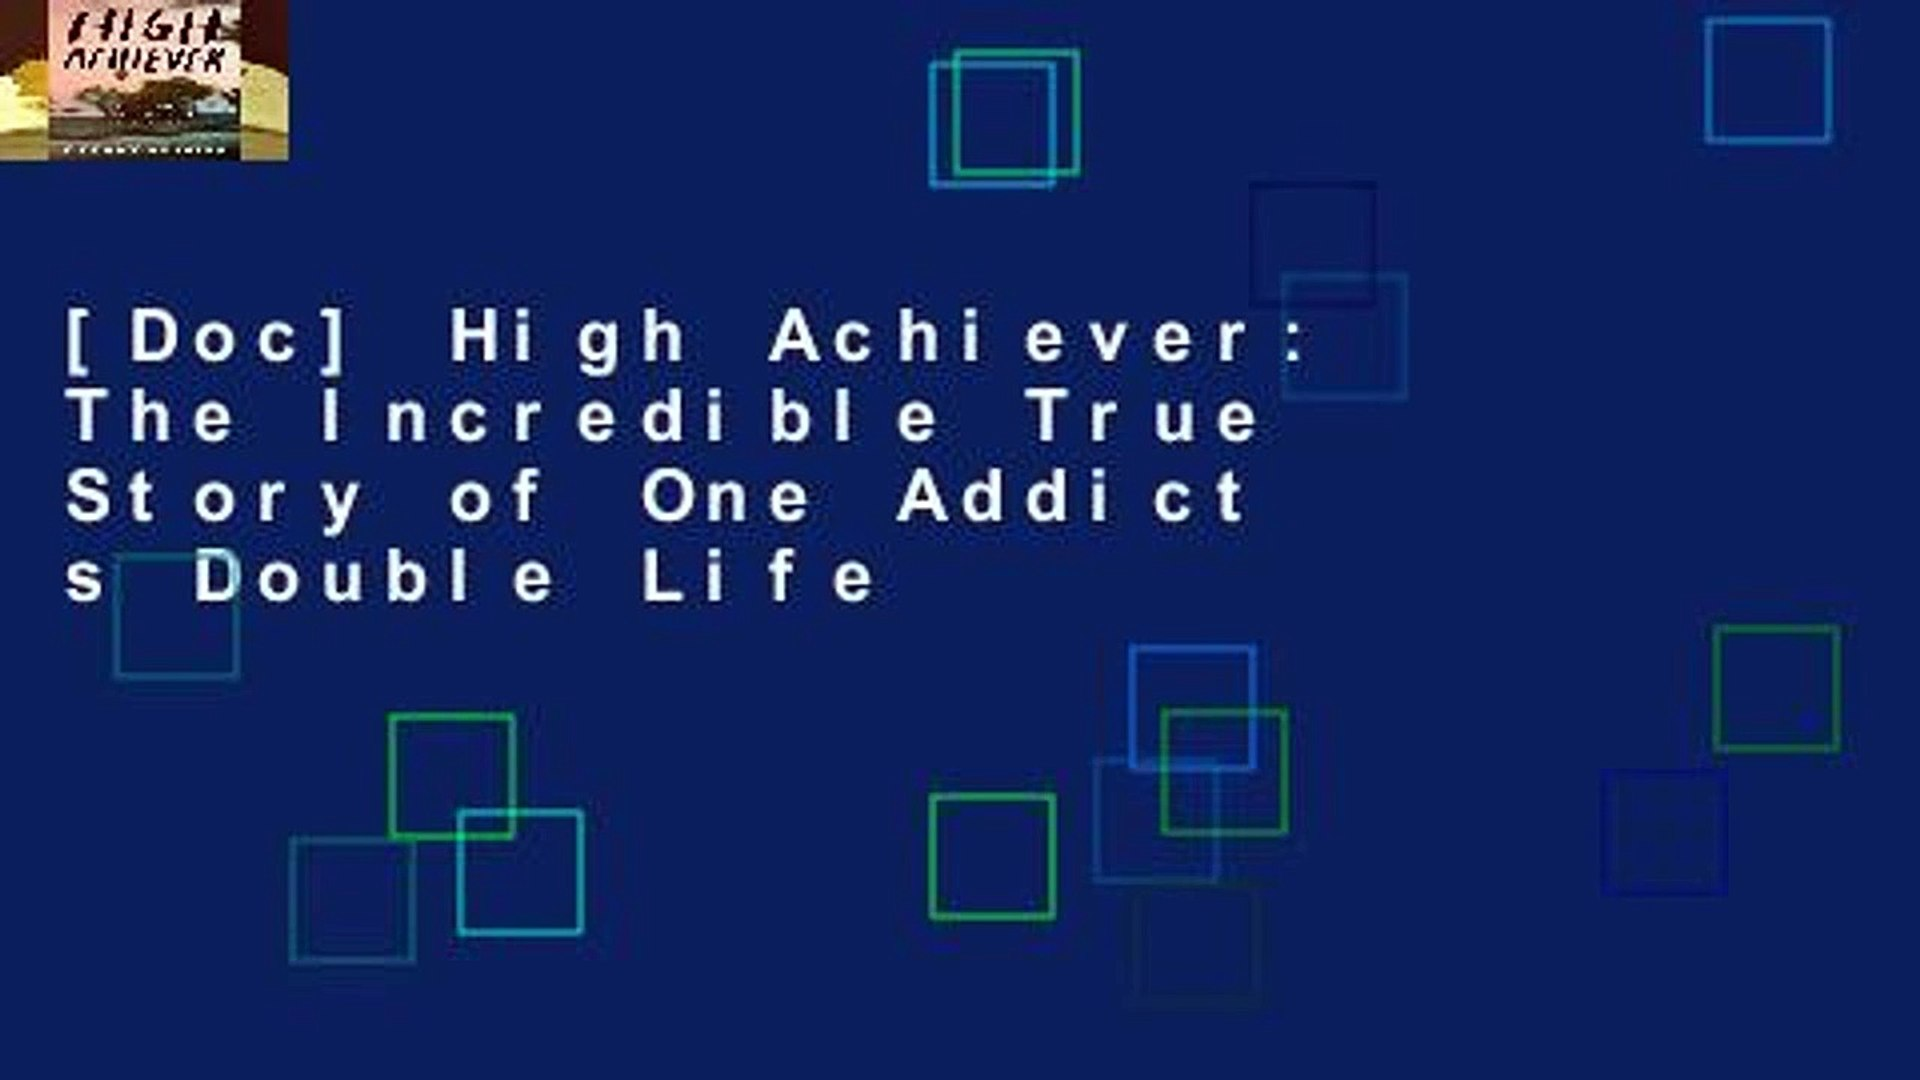 [Doc] High Achiever: The Incredible True Story of One Addict s Double Life